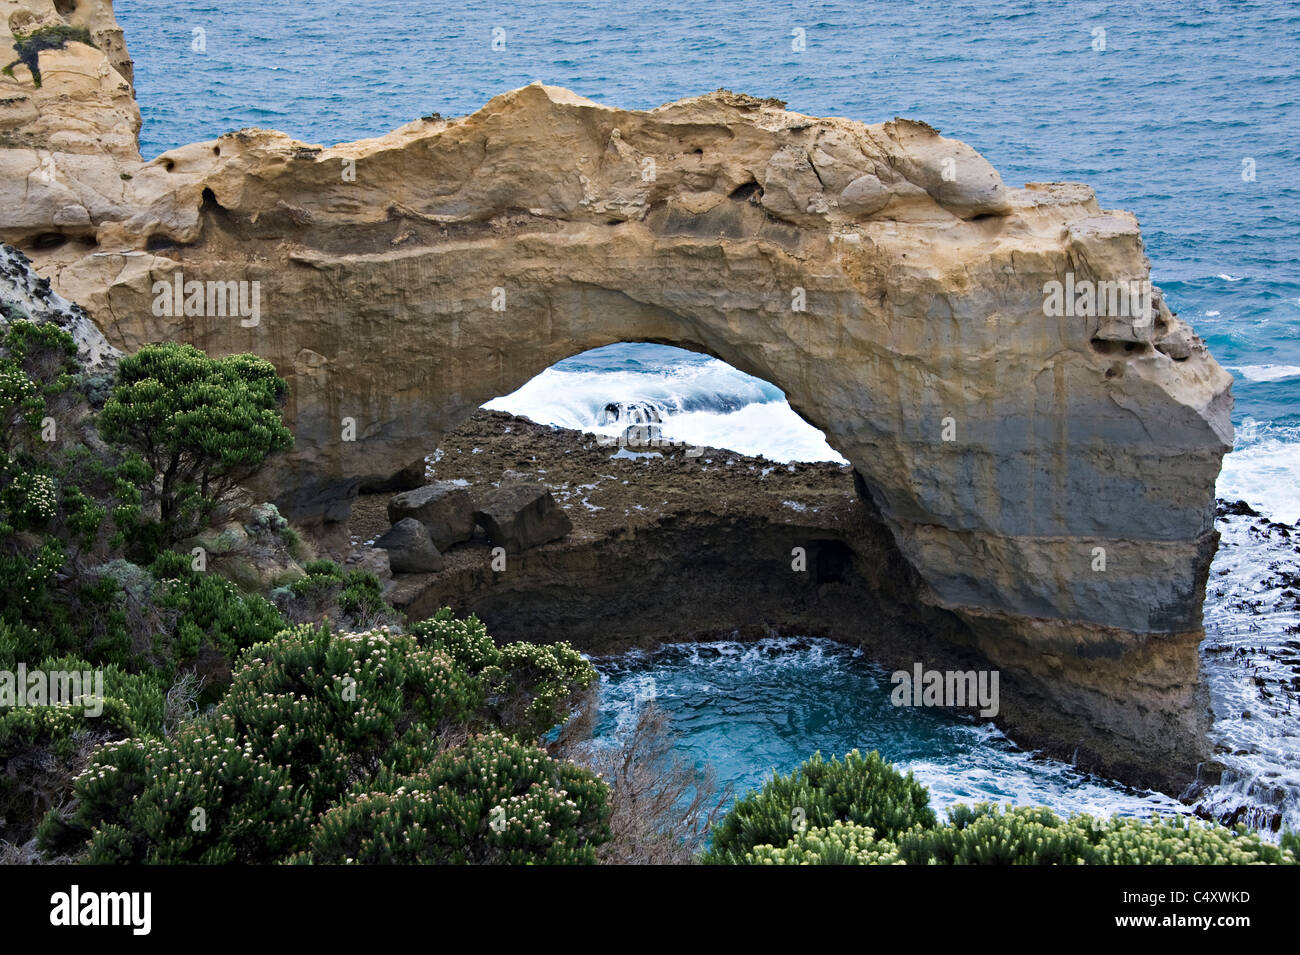 Archway Formed by Erosion by Sea in Rocks on the Great Ocean Road near Port Campbell Victoria Australia - Stock Image